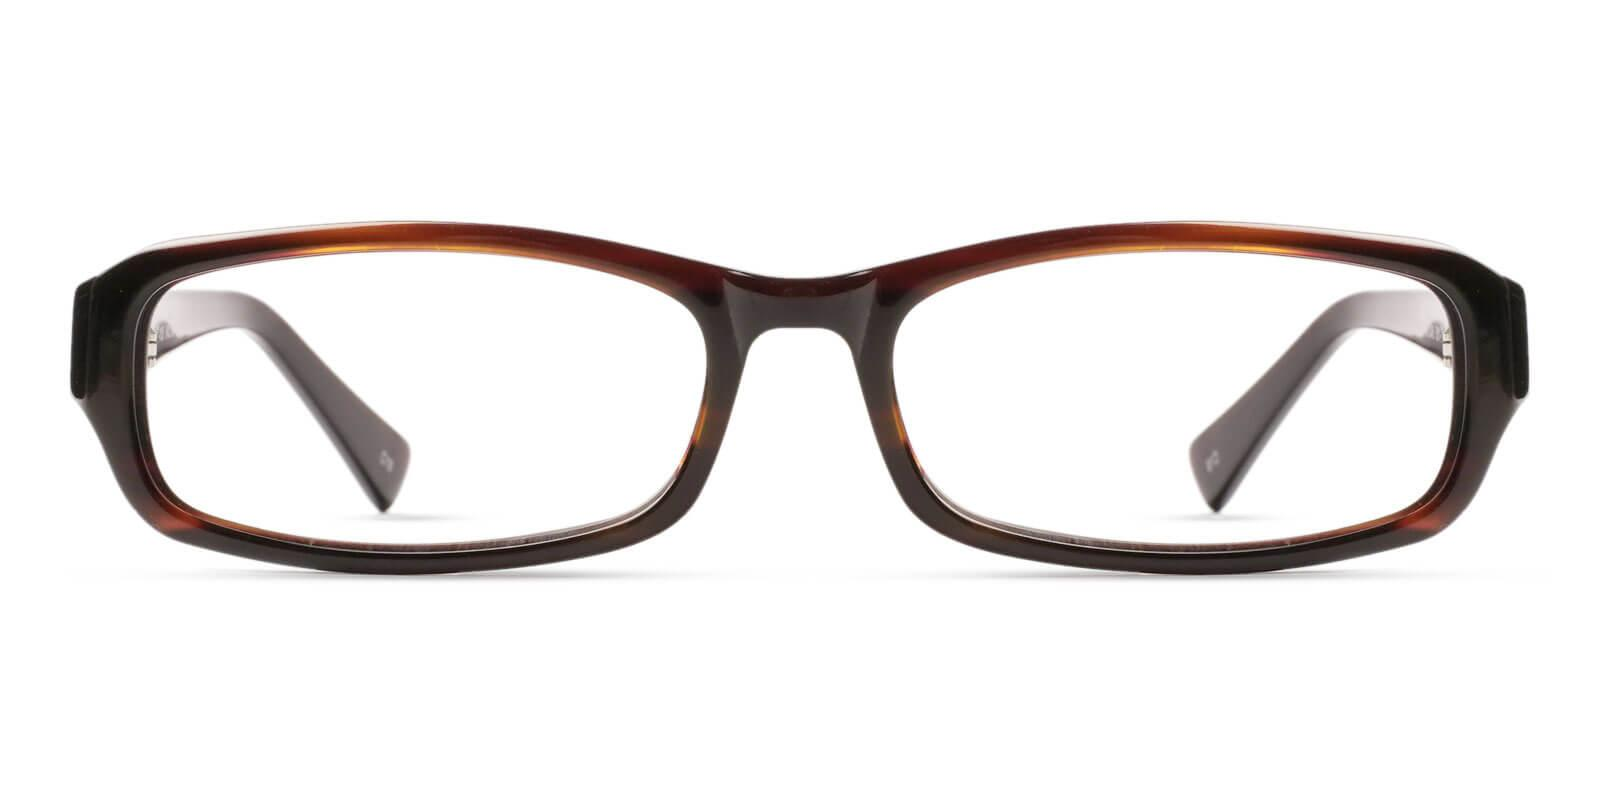 Firma Brown Acetate Eyeglasses , UniversalBridgeFit Frames from ABBE Glasses